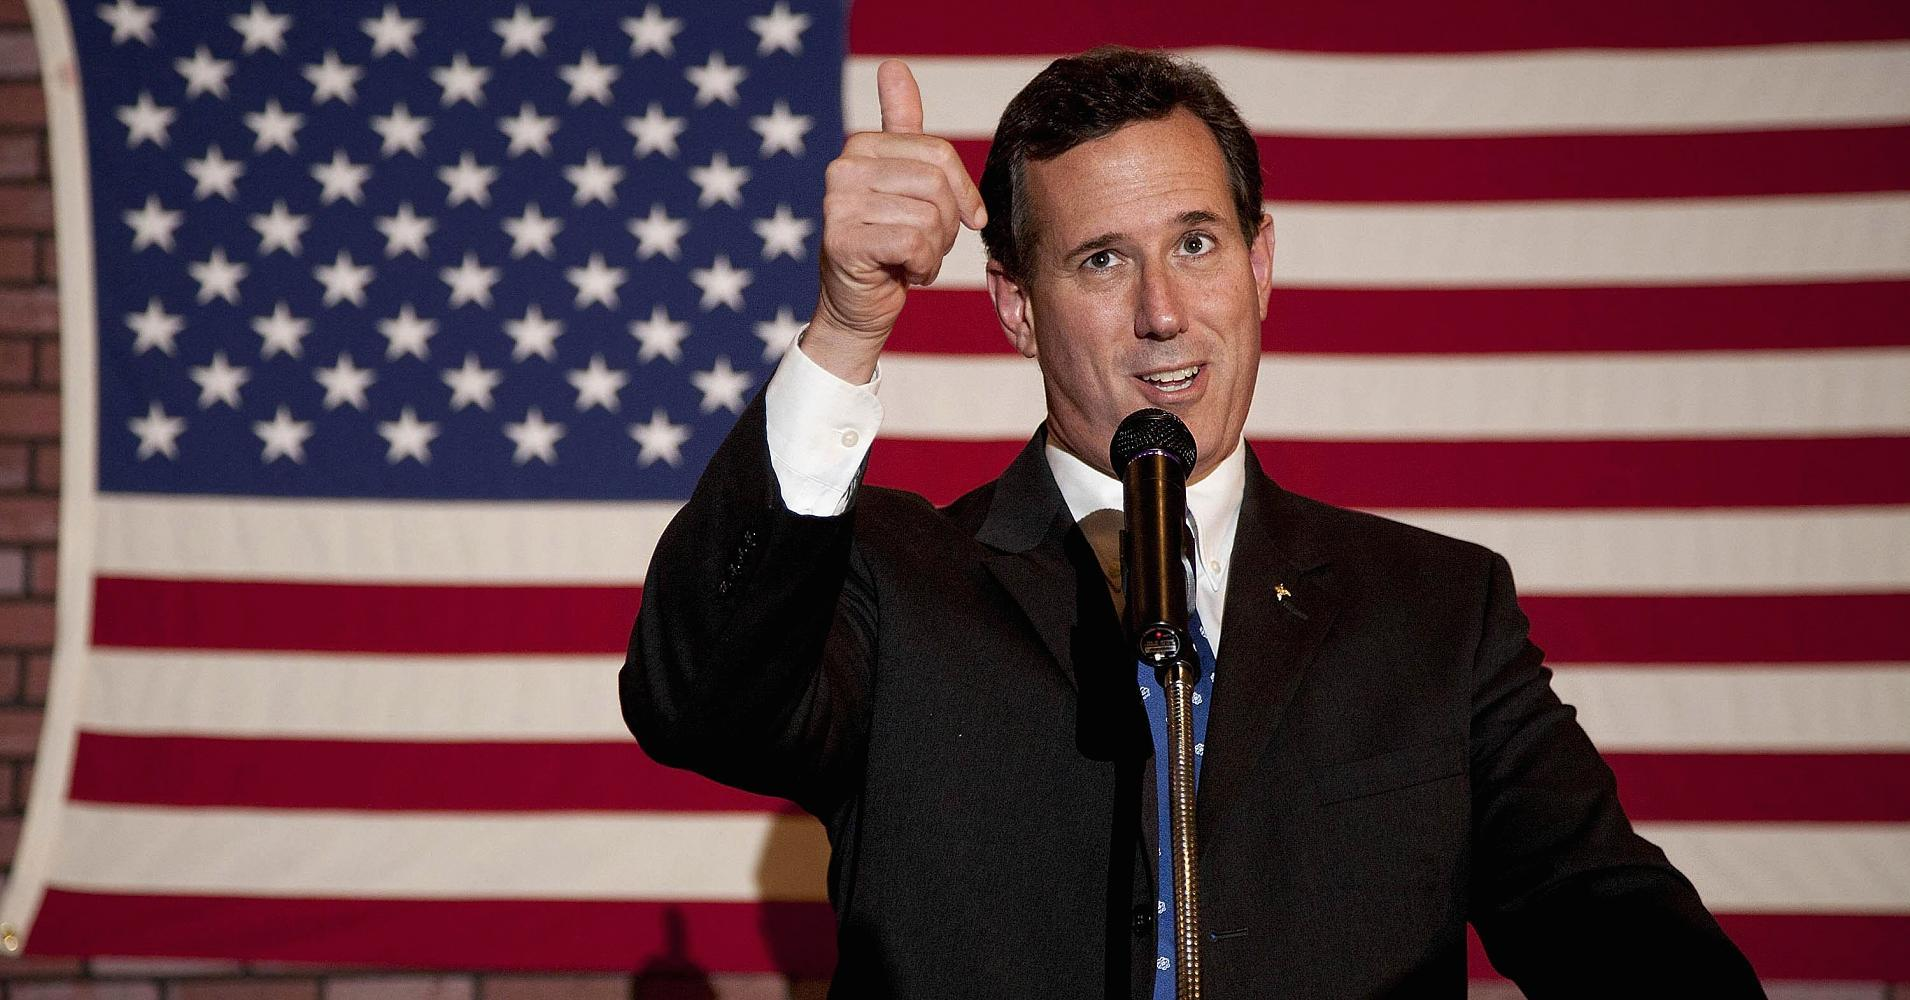 Rick Santorum officially launches presidential bid